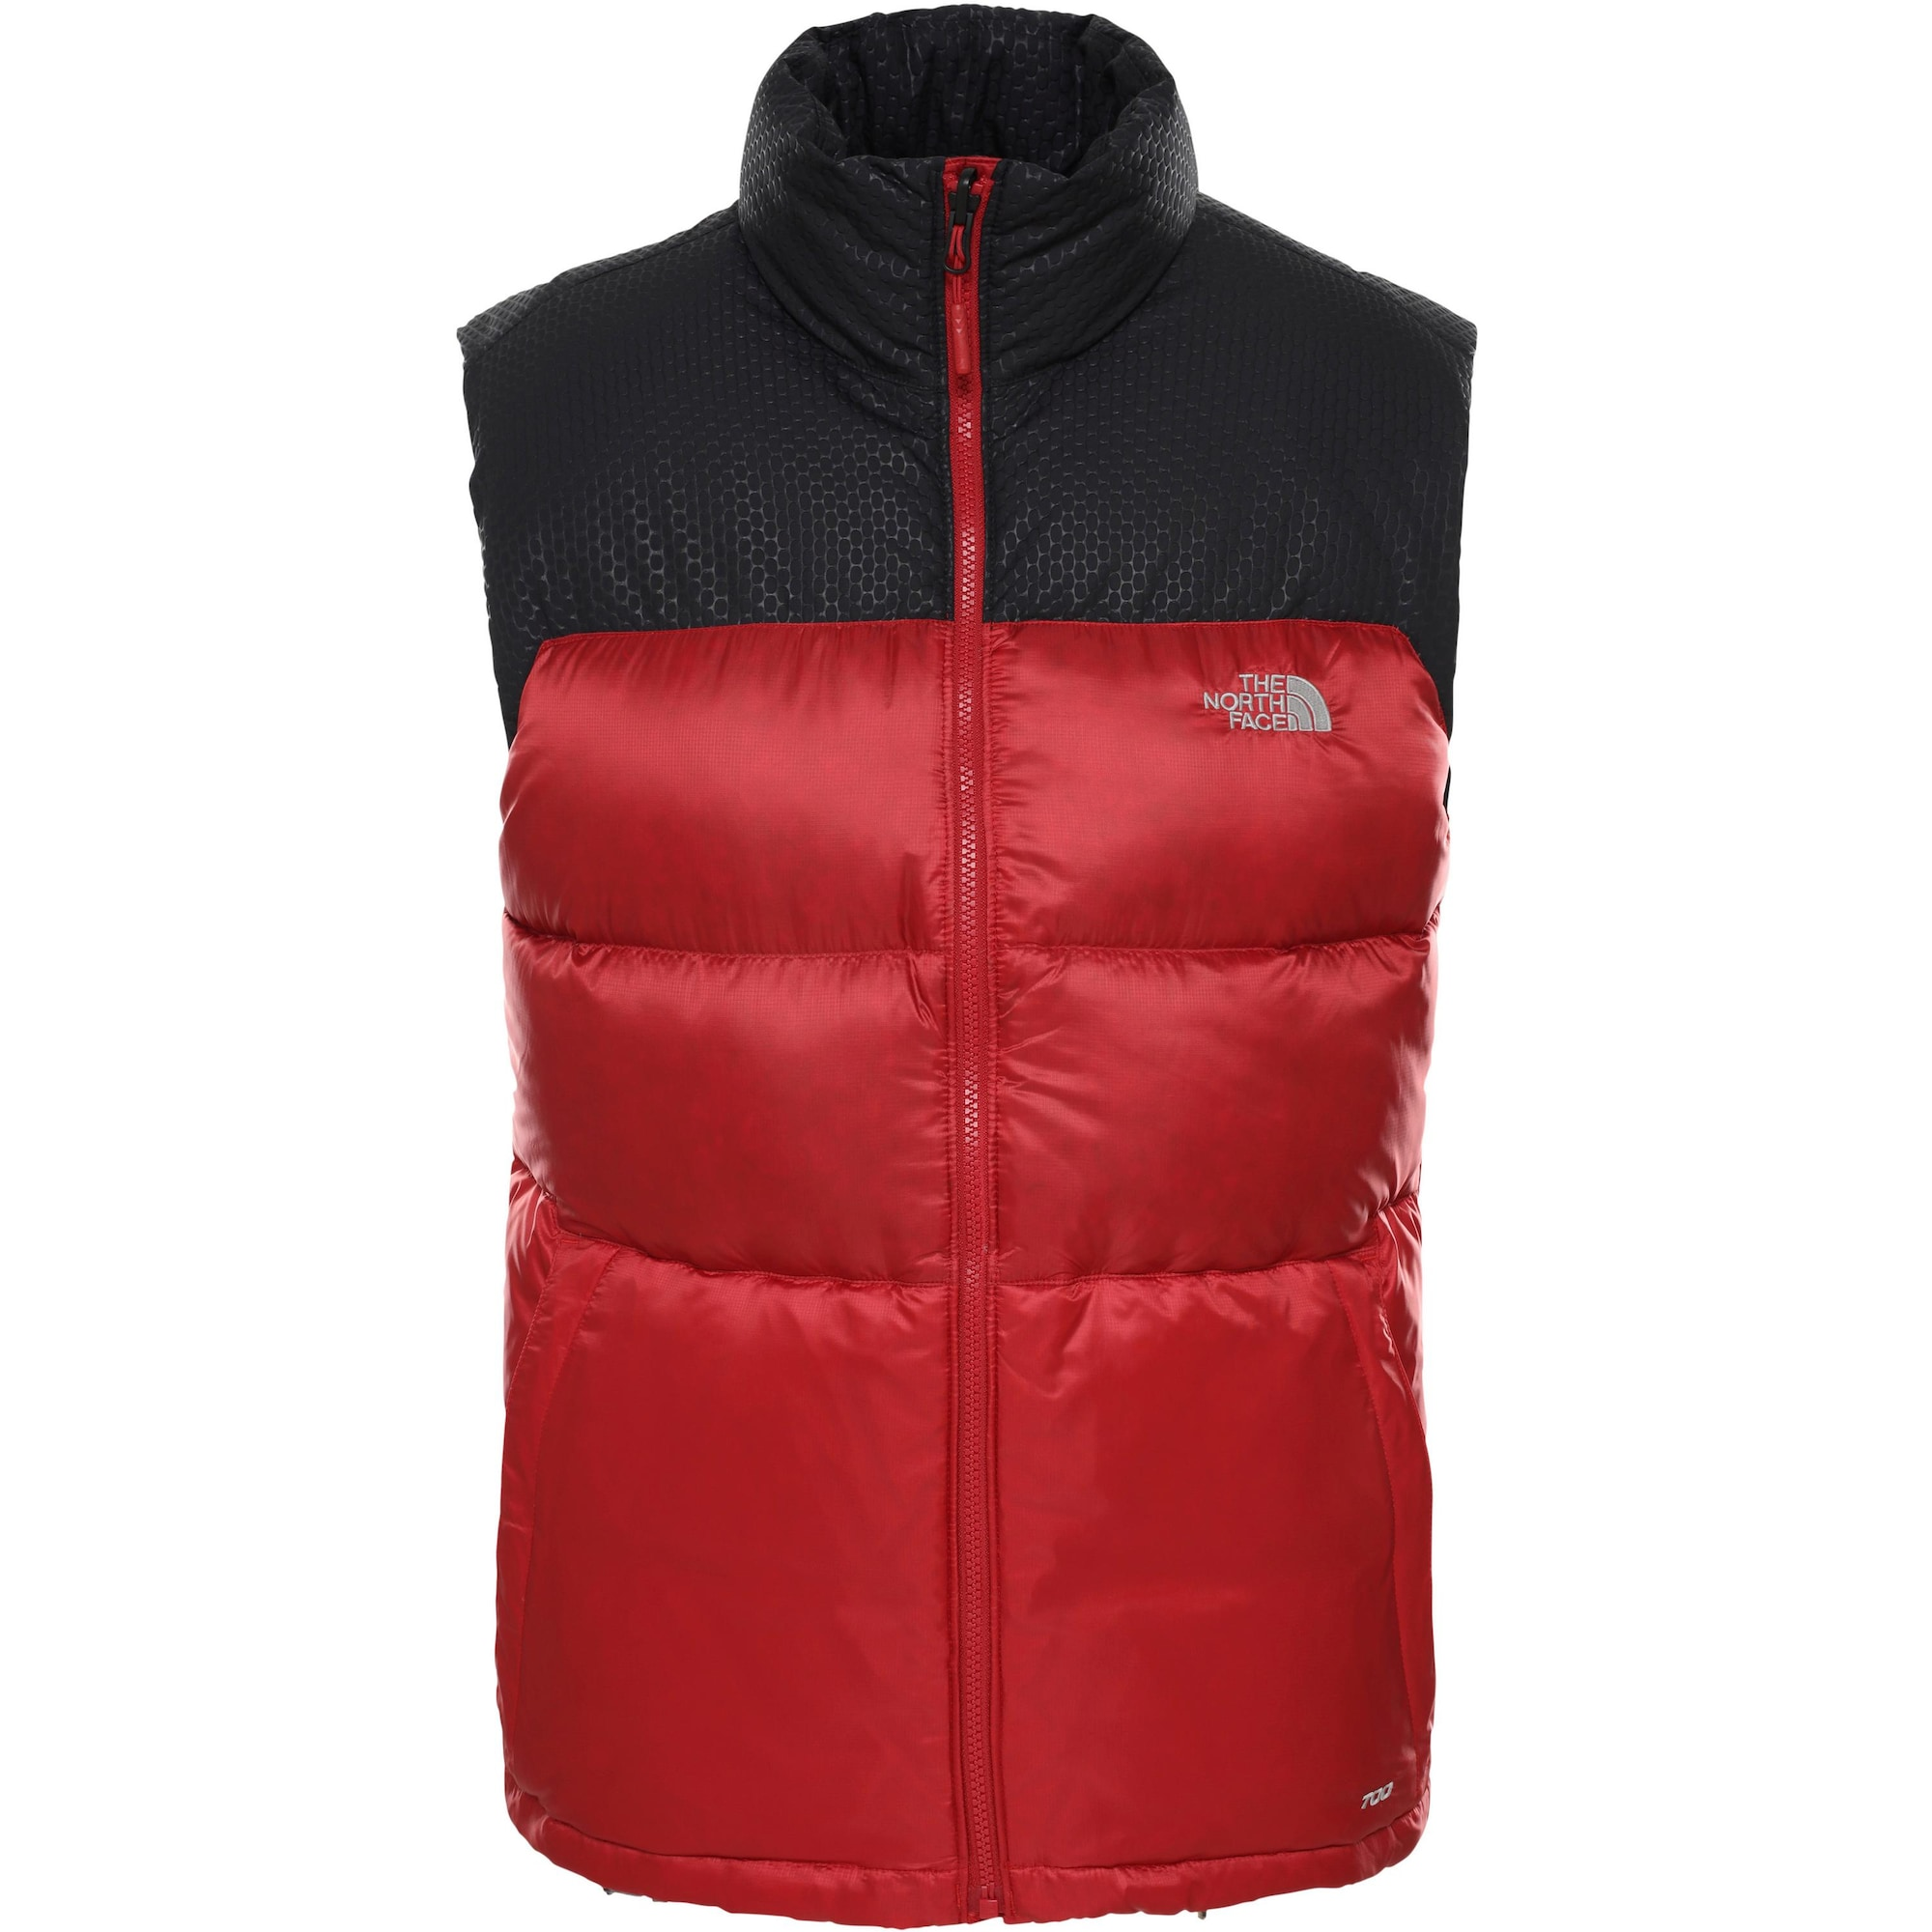 Outdoorweste 'Nevero' | Sportbekleidung > Sportwesten > Outdoorwesten | Schwarz | The North Face